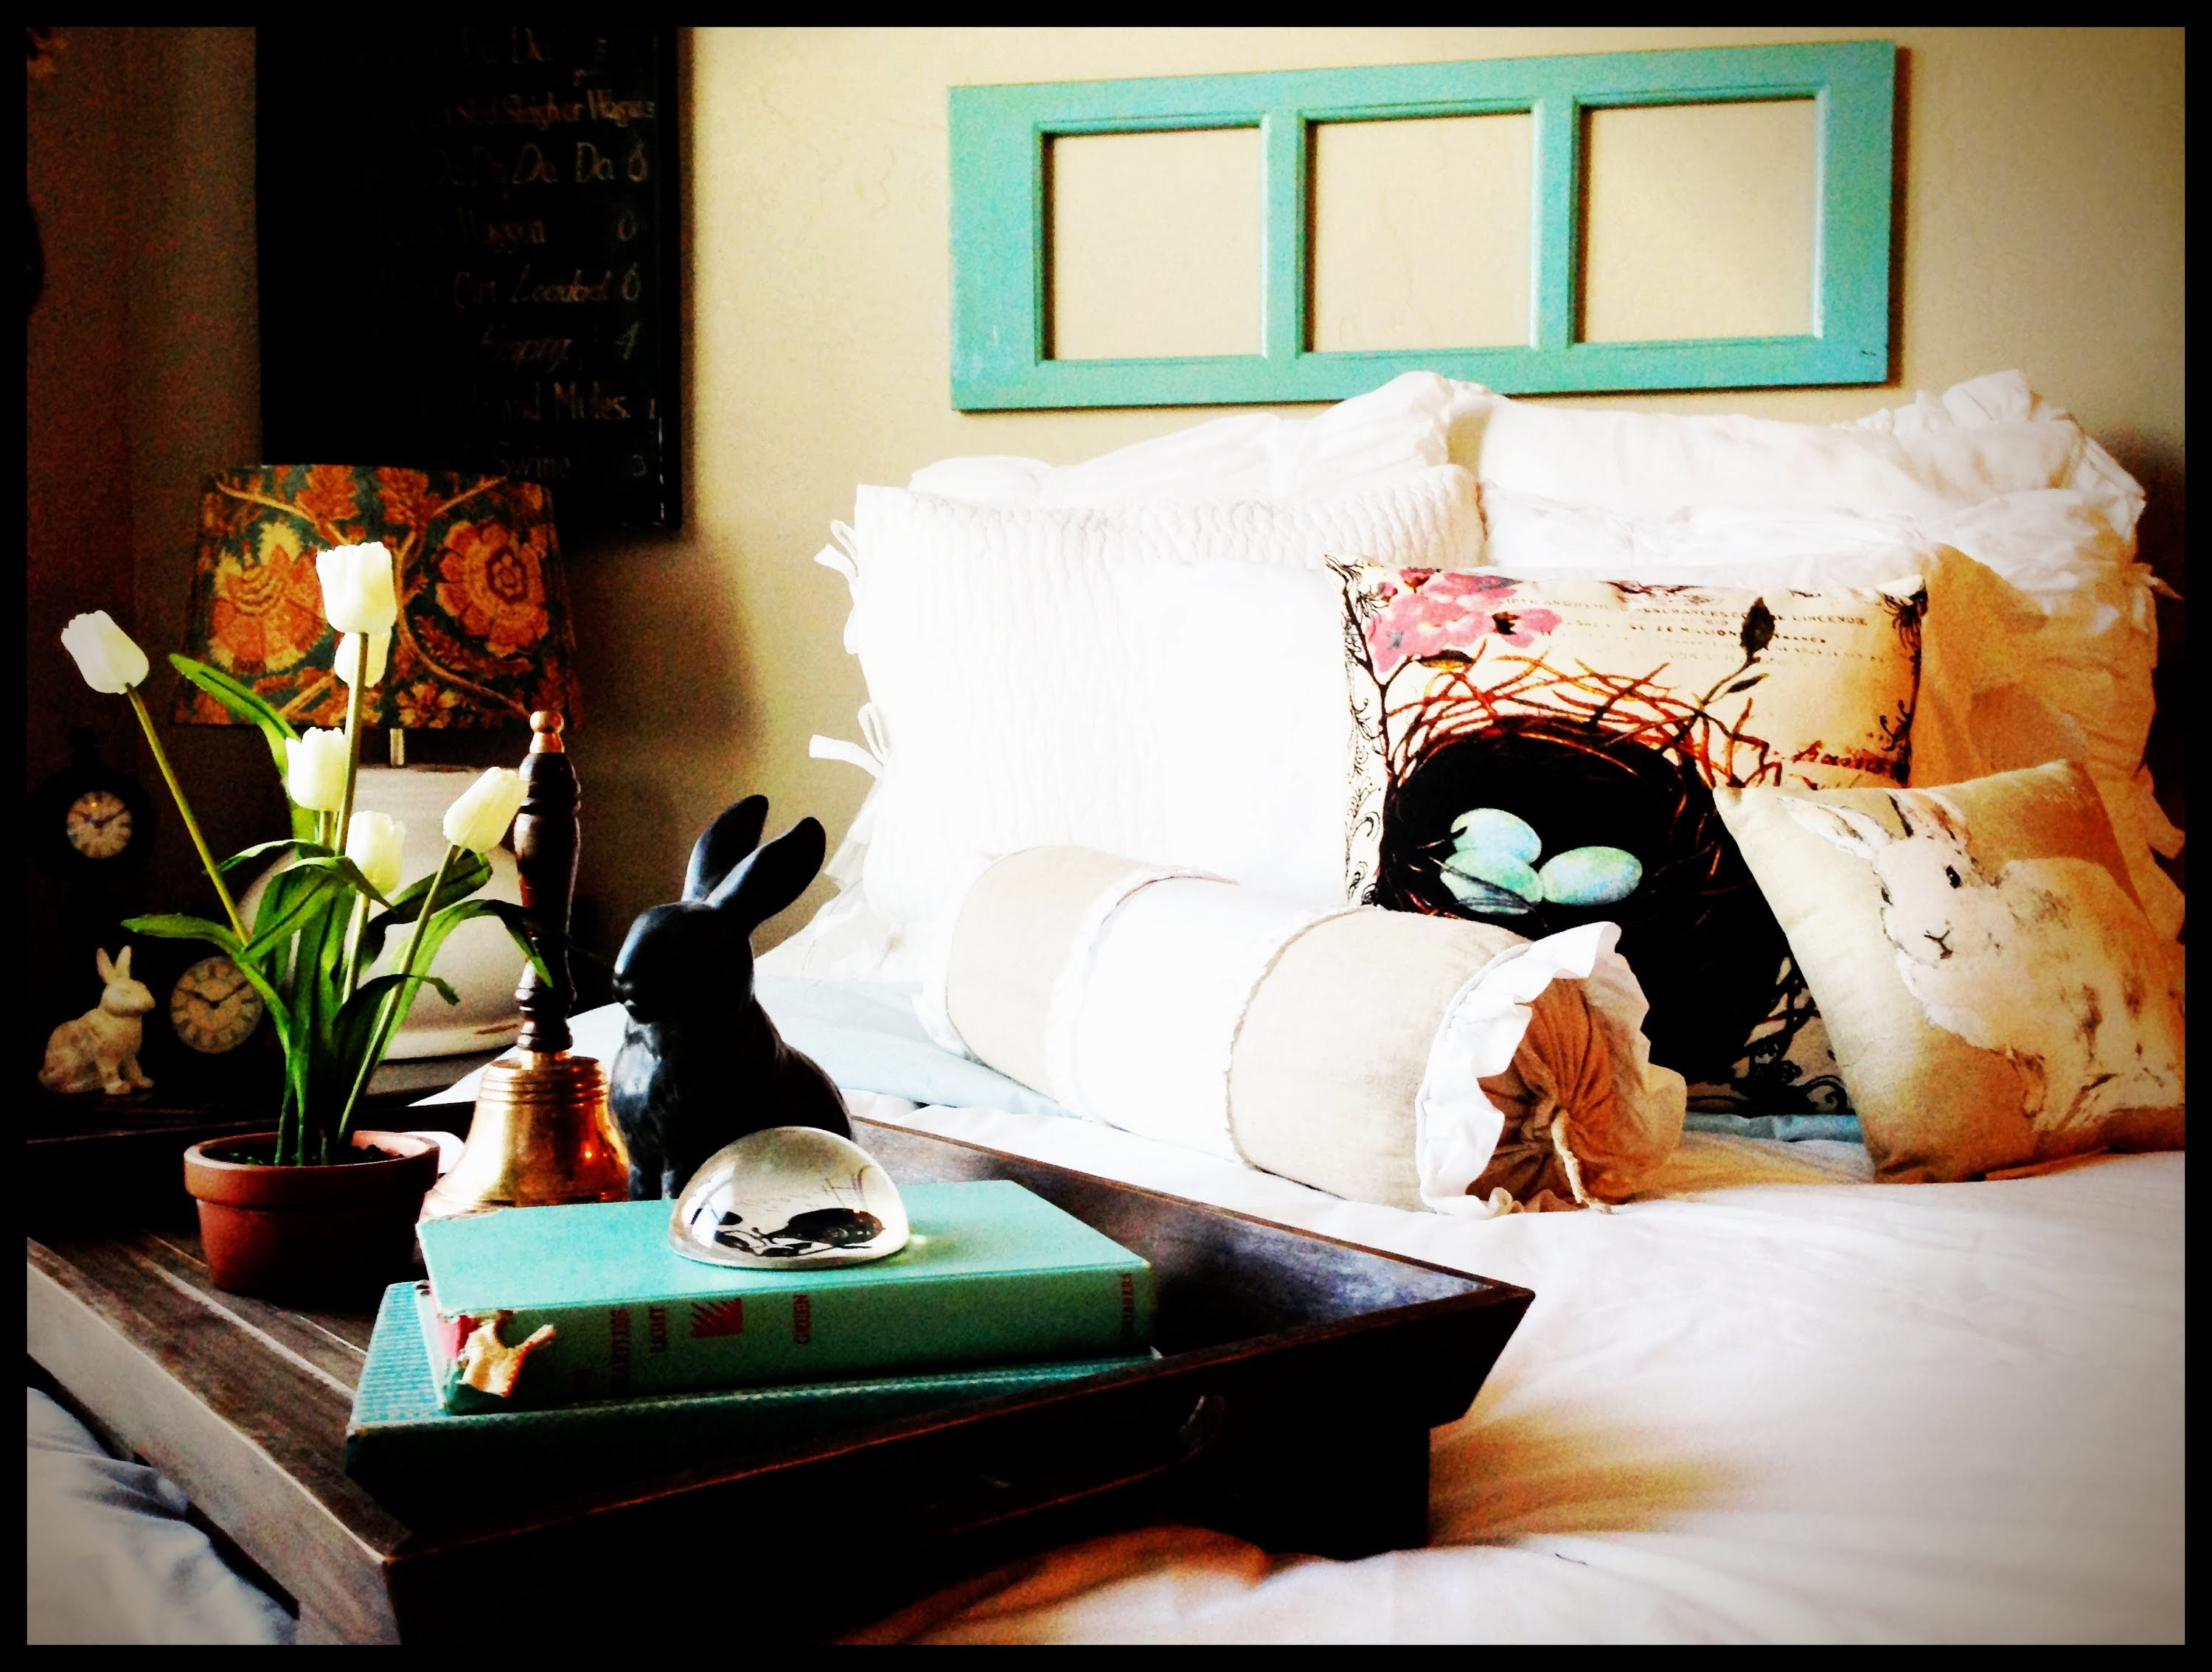 Spring Easter Decor Bedroom Tour DIY How To Farmhouse Chic